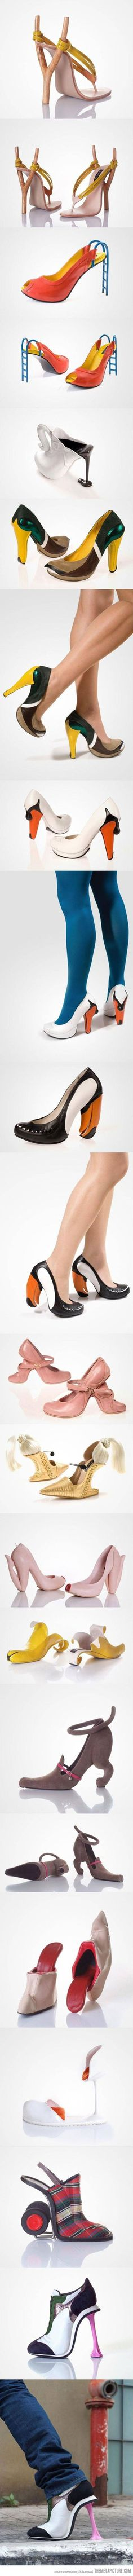 Creative high heel designs